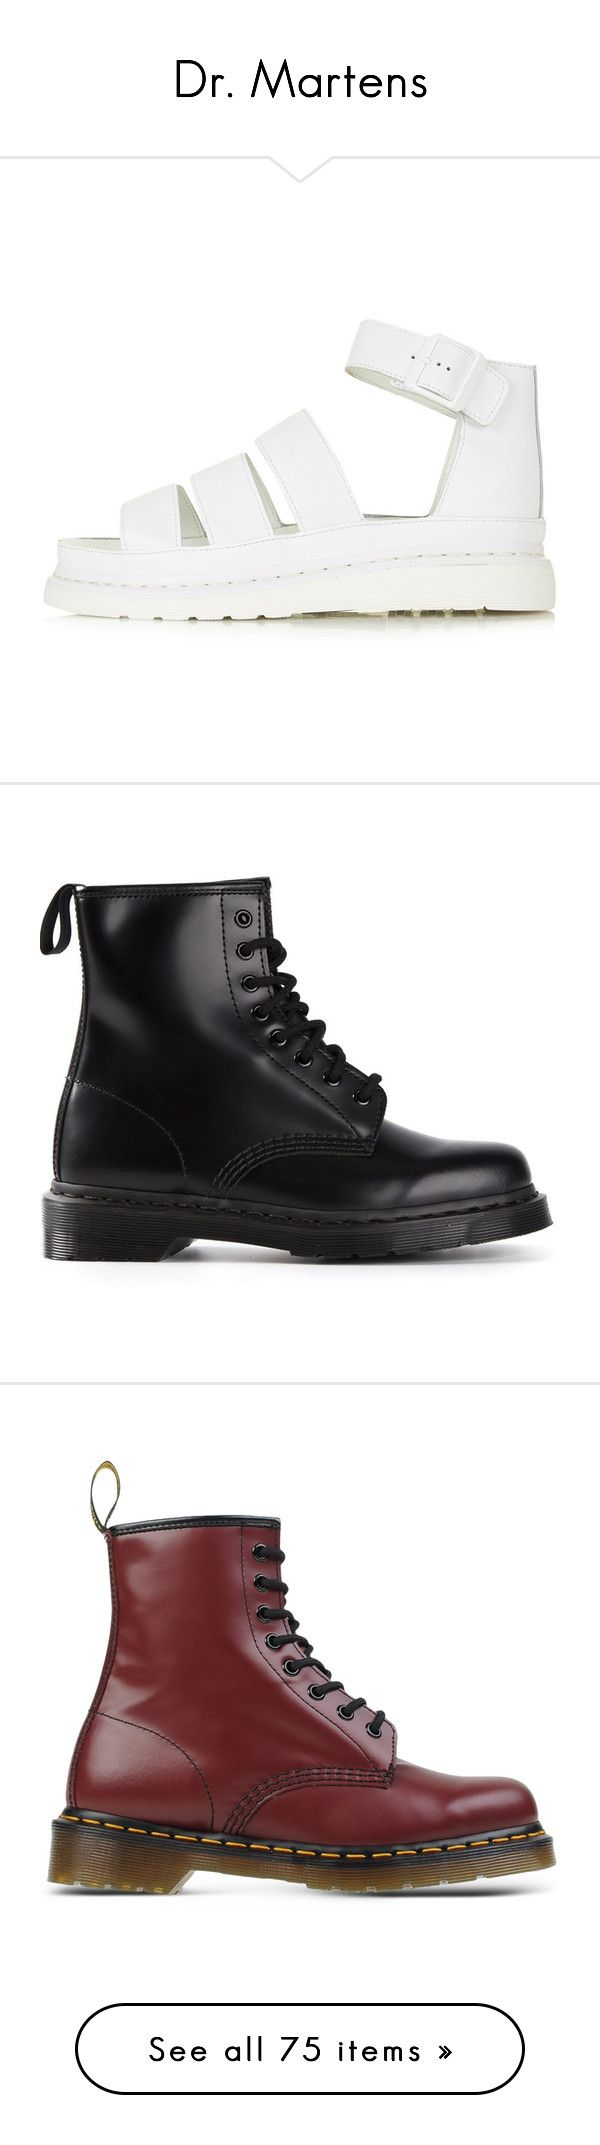 """""""Dr. Martens"""" by cherrypopanda ❤ liked on Polyvore featuring shoes, sandals, sapatos, white, dr martens sandals, real leather shoes, dr martens footwear, genuine leather shoes, leather shoes and boots"""